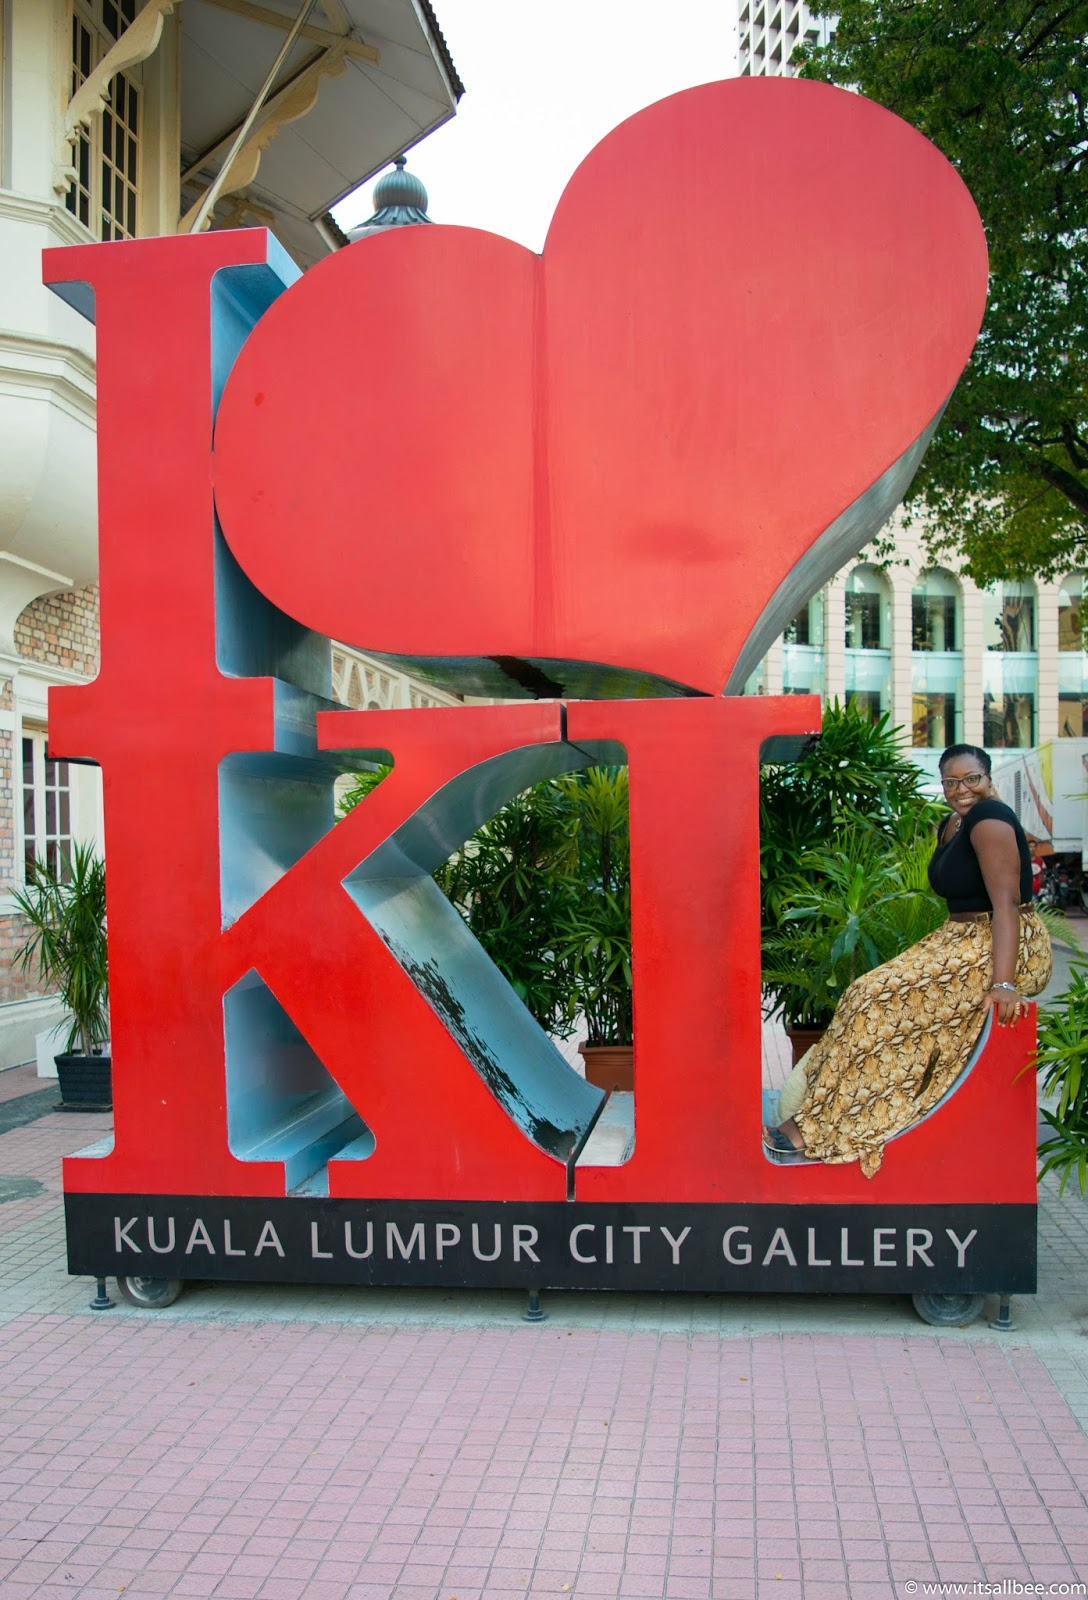 KL City Gallery I Love KL Statue